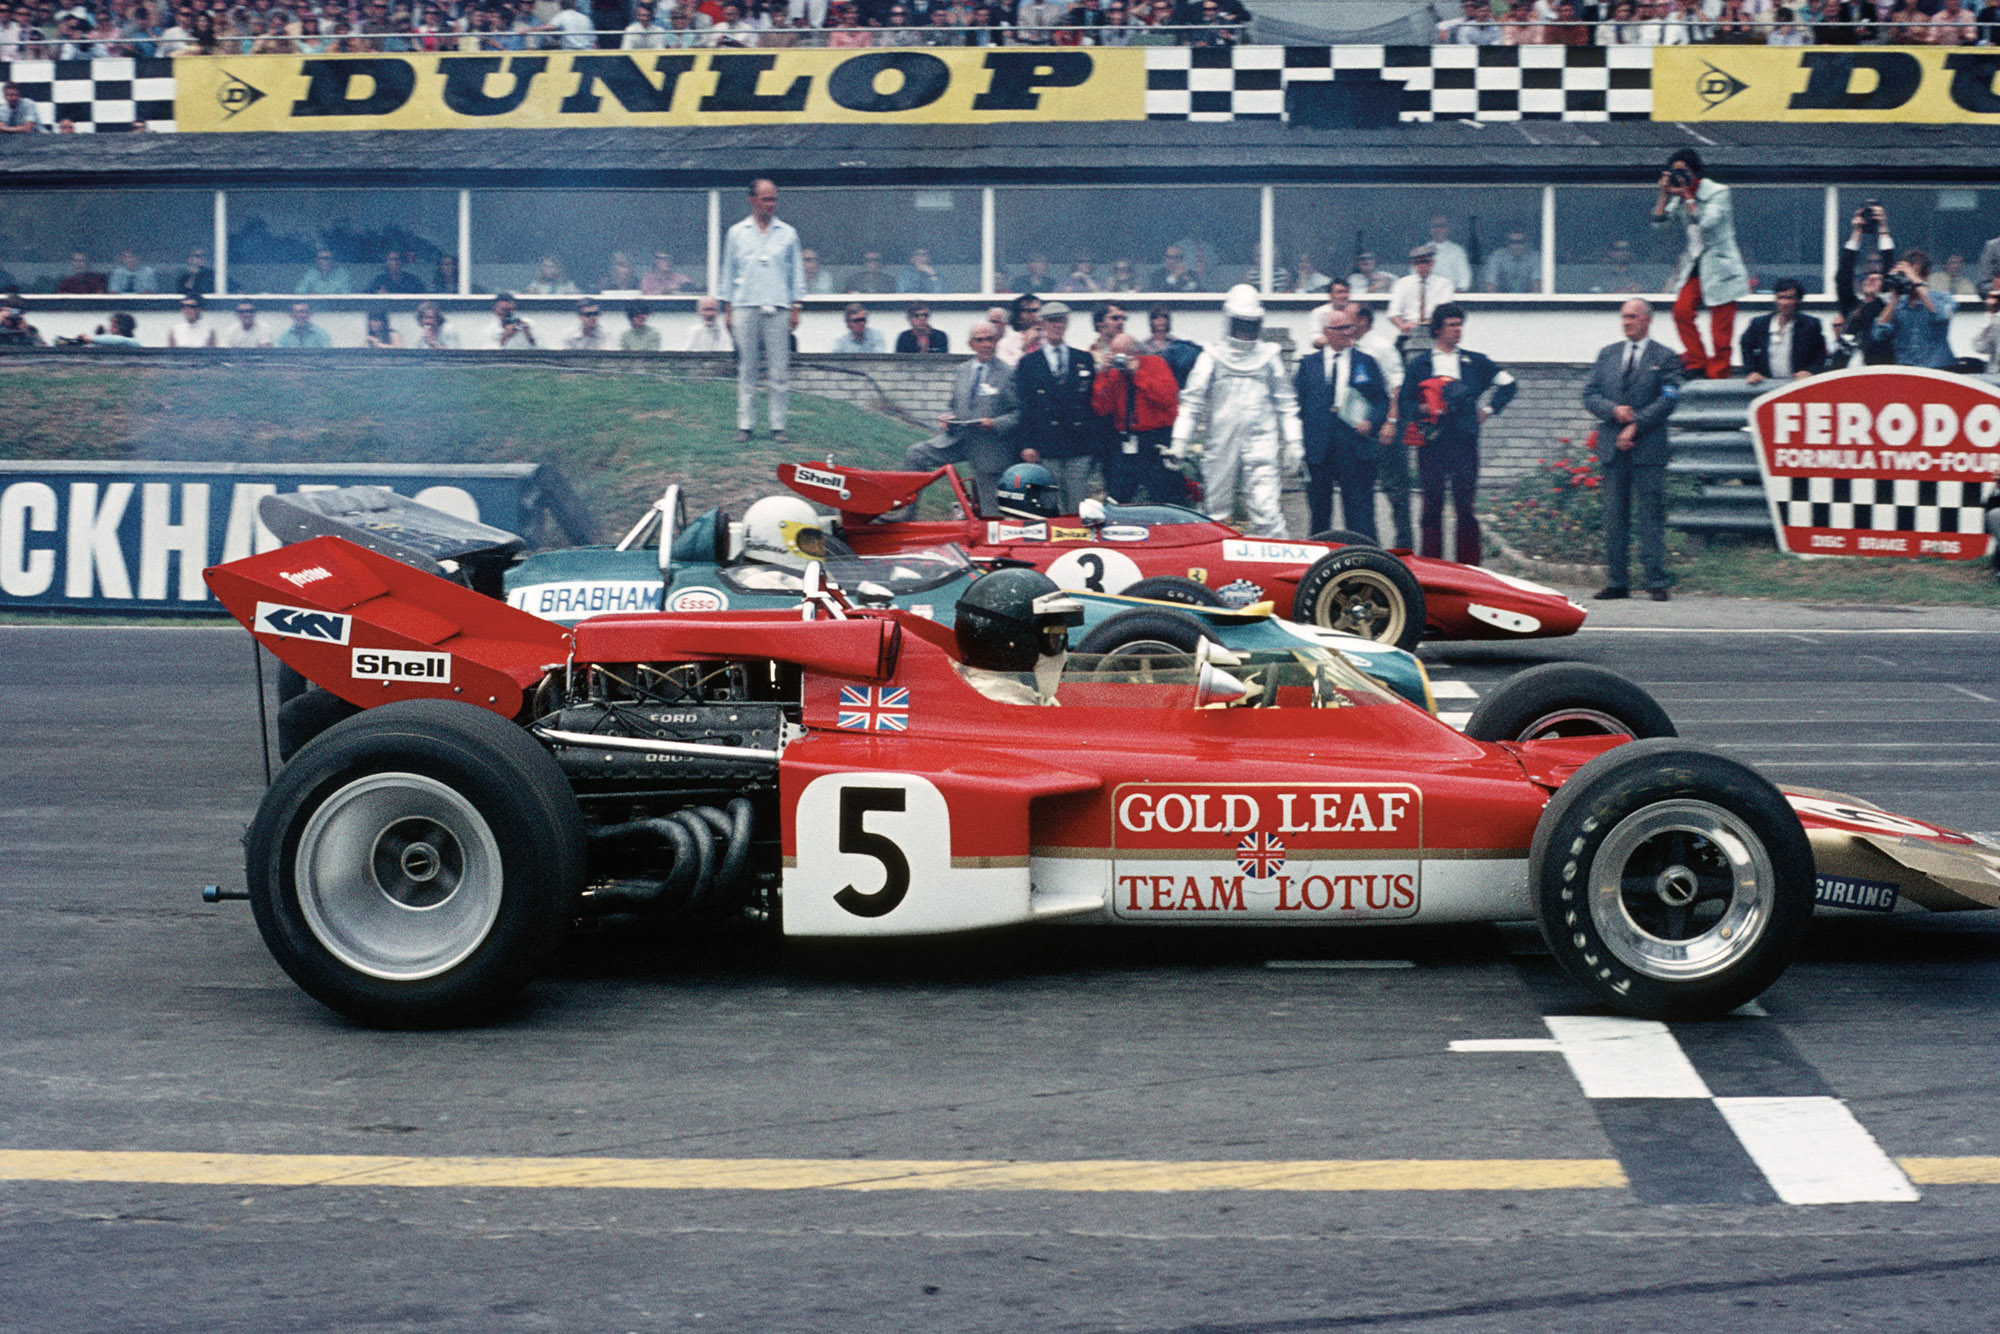 Jochen Rindt Jack Brabham and Jacky Ickx on the Brands Hatch grid at the 1970 F1 Brtish Grand Prix